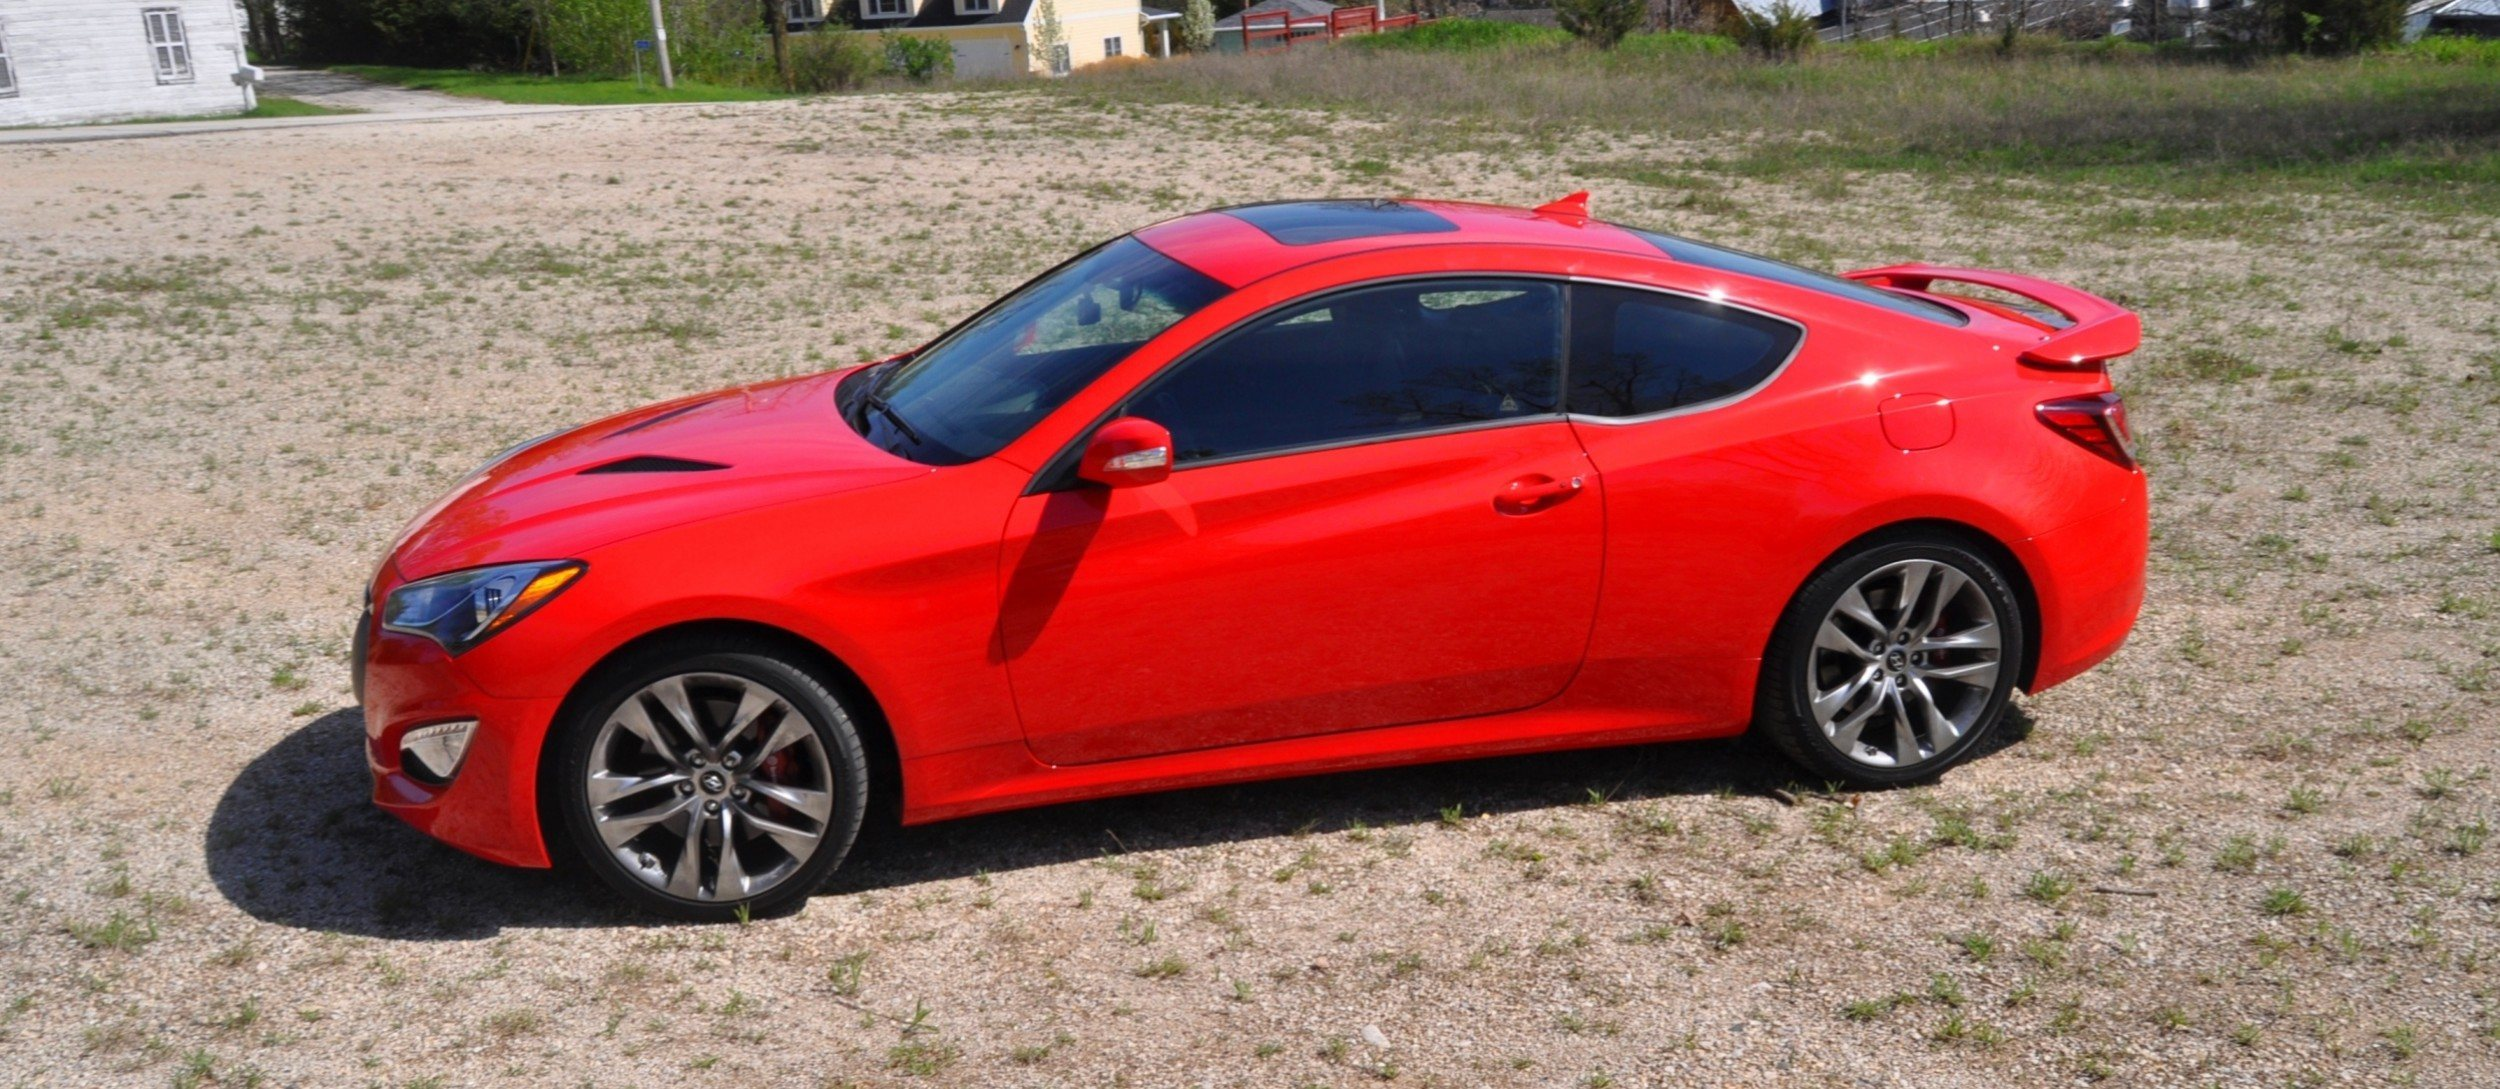 2014 hyundai genesis coupe 3 8l v6 r spec road test review of fast and fun rwd sportscar 101. Black Bedroom Furniture Sets. Home Design Ideas